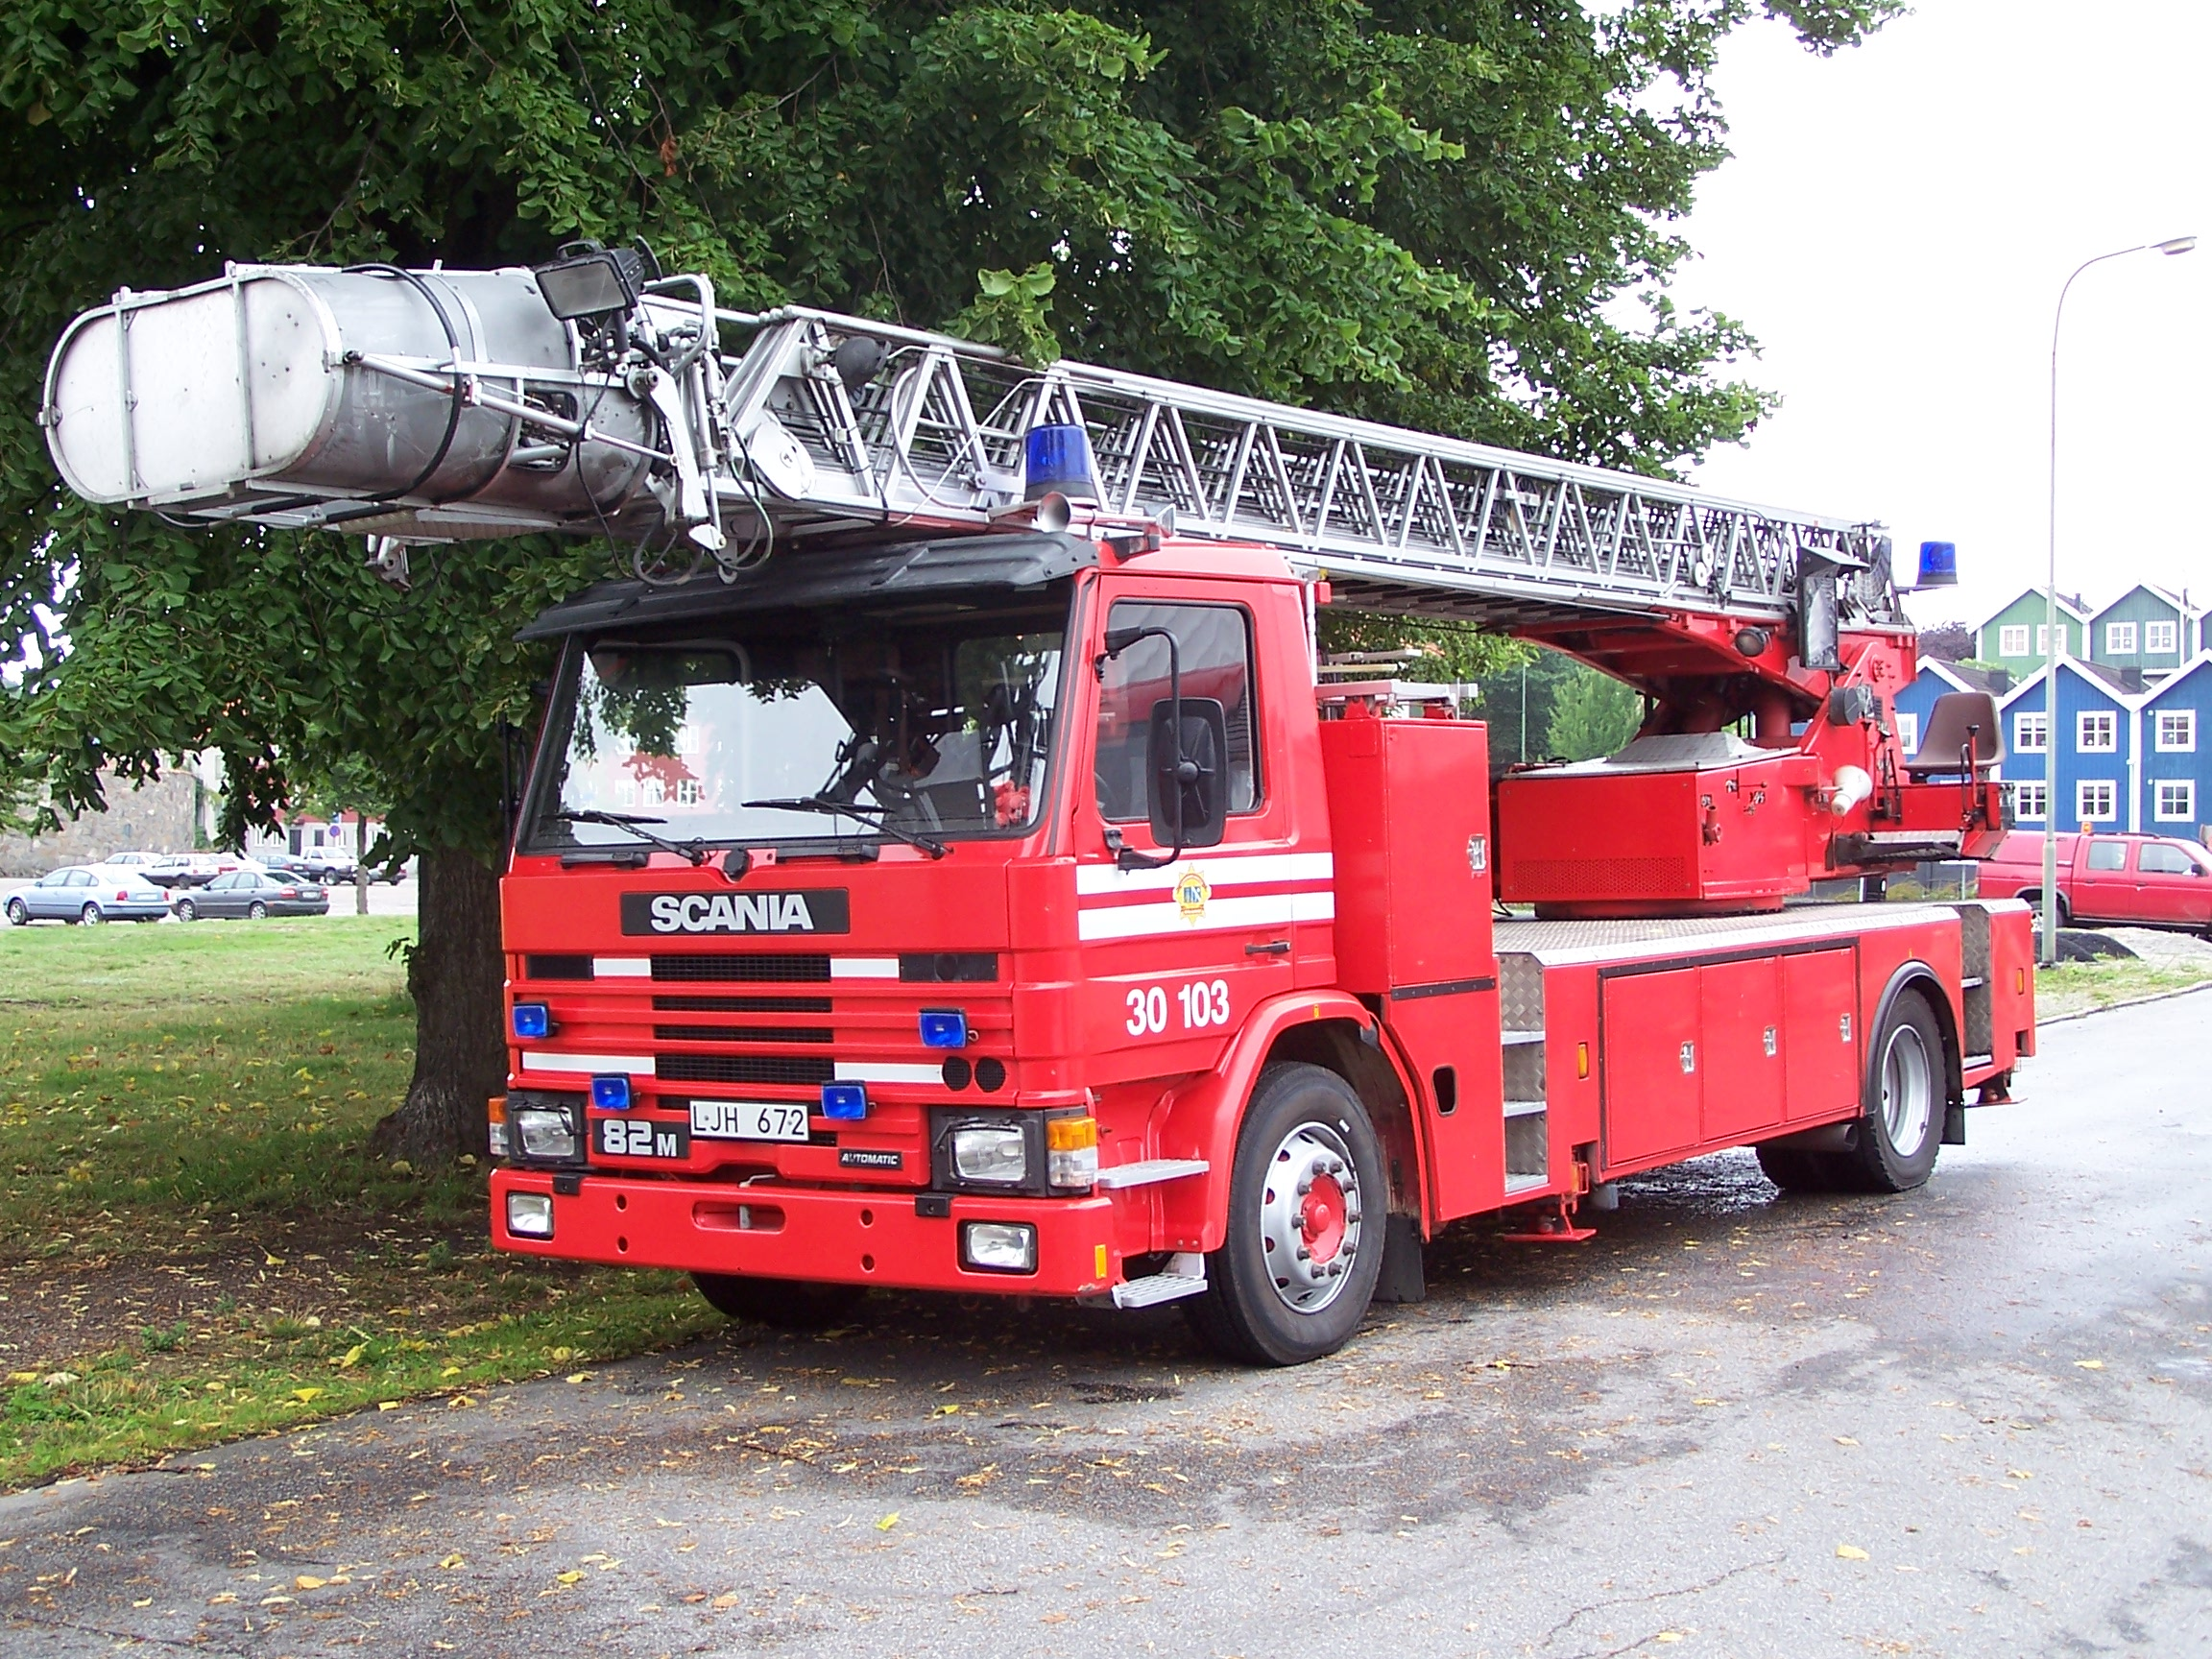 the fire engine - photo #3